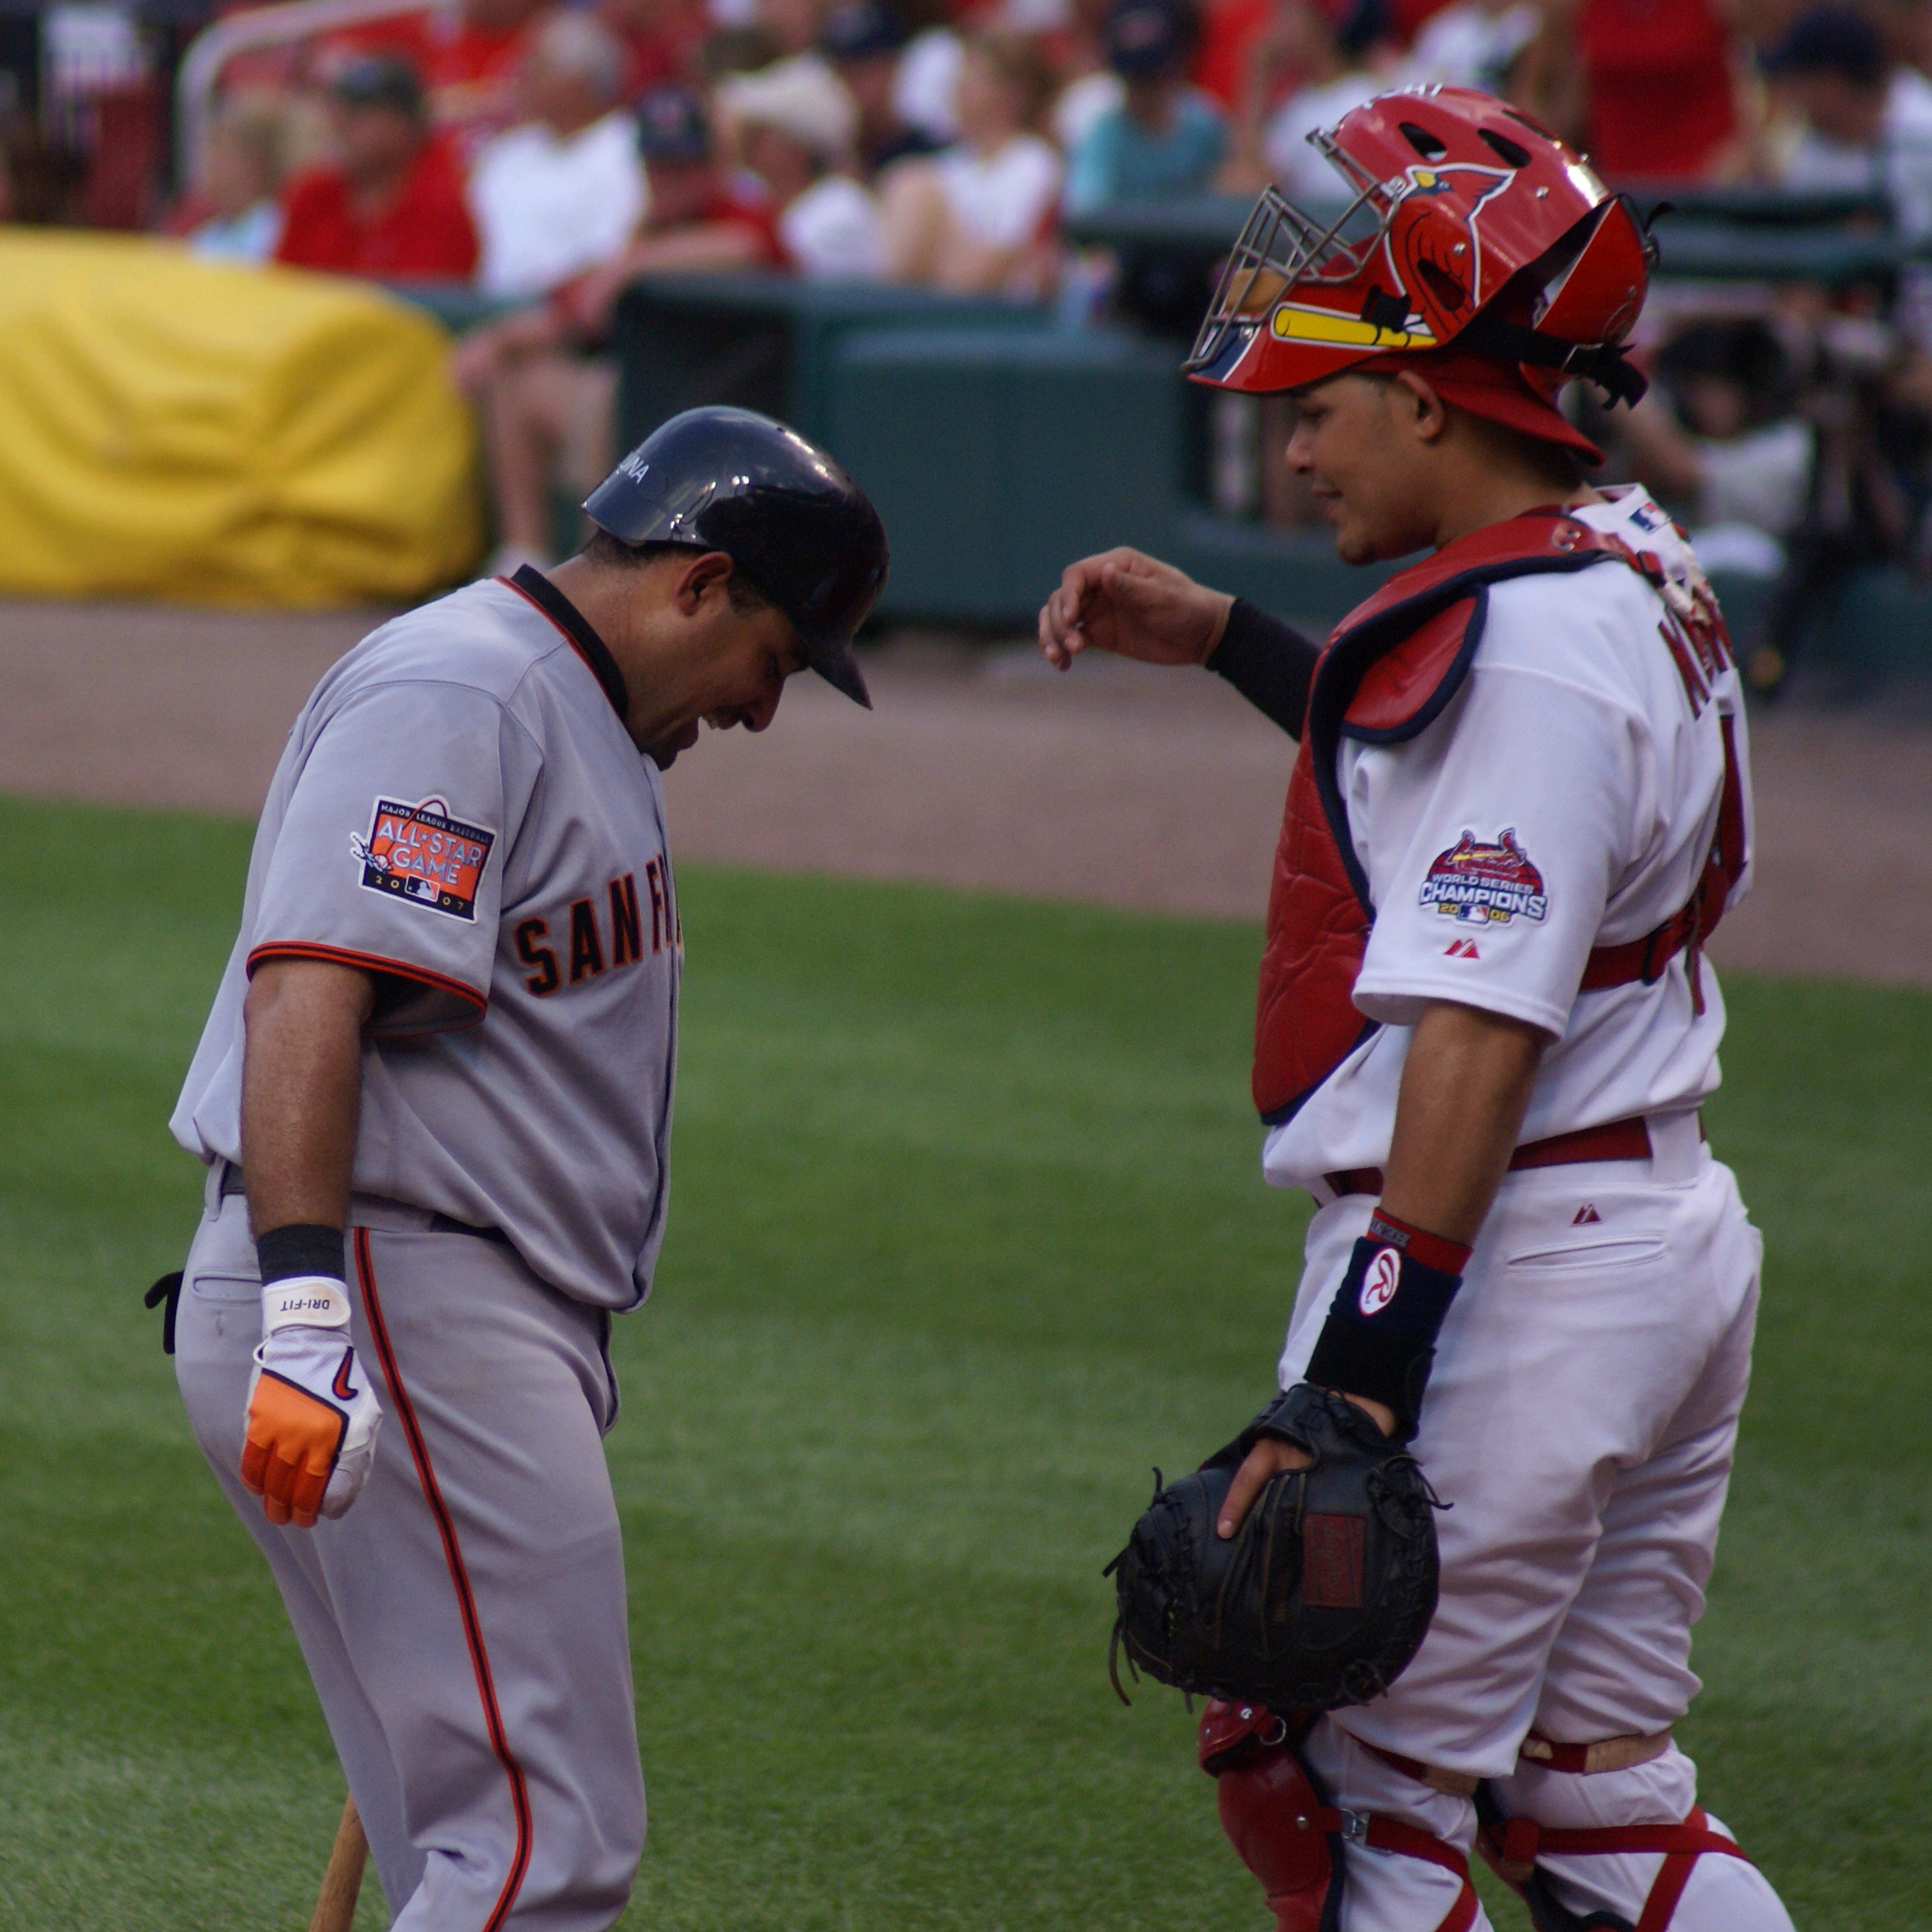 Molina interacting with his brother Bengie in a 2007 game, the first time they faced each other in the Major Leagues